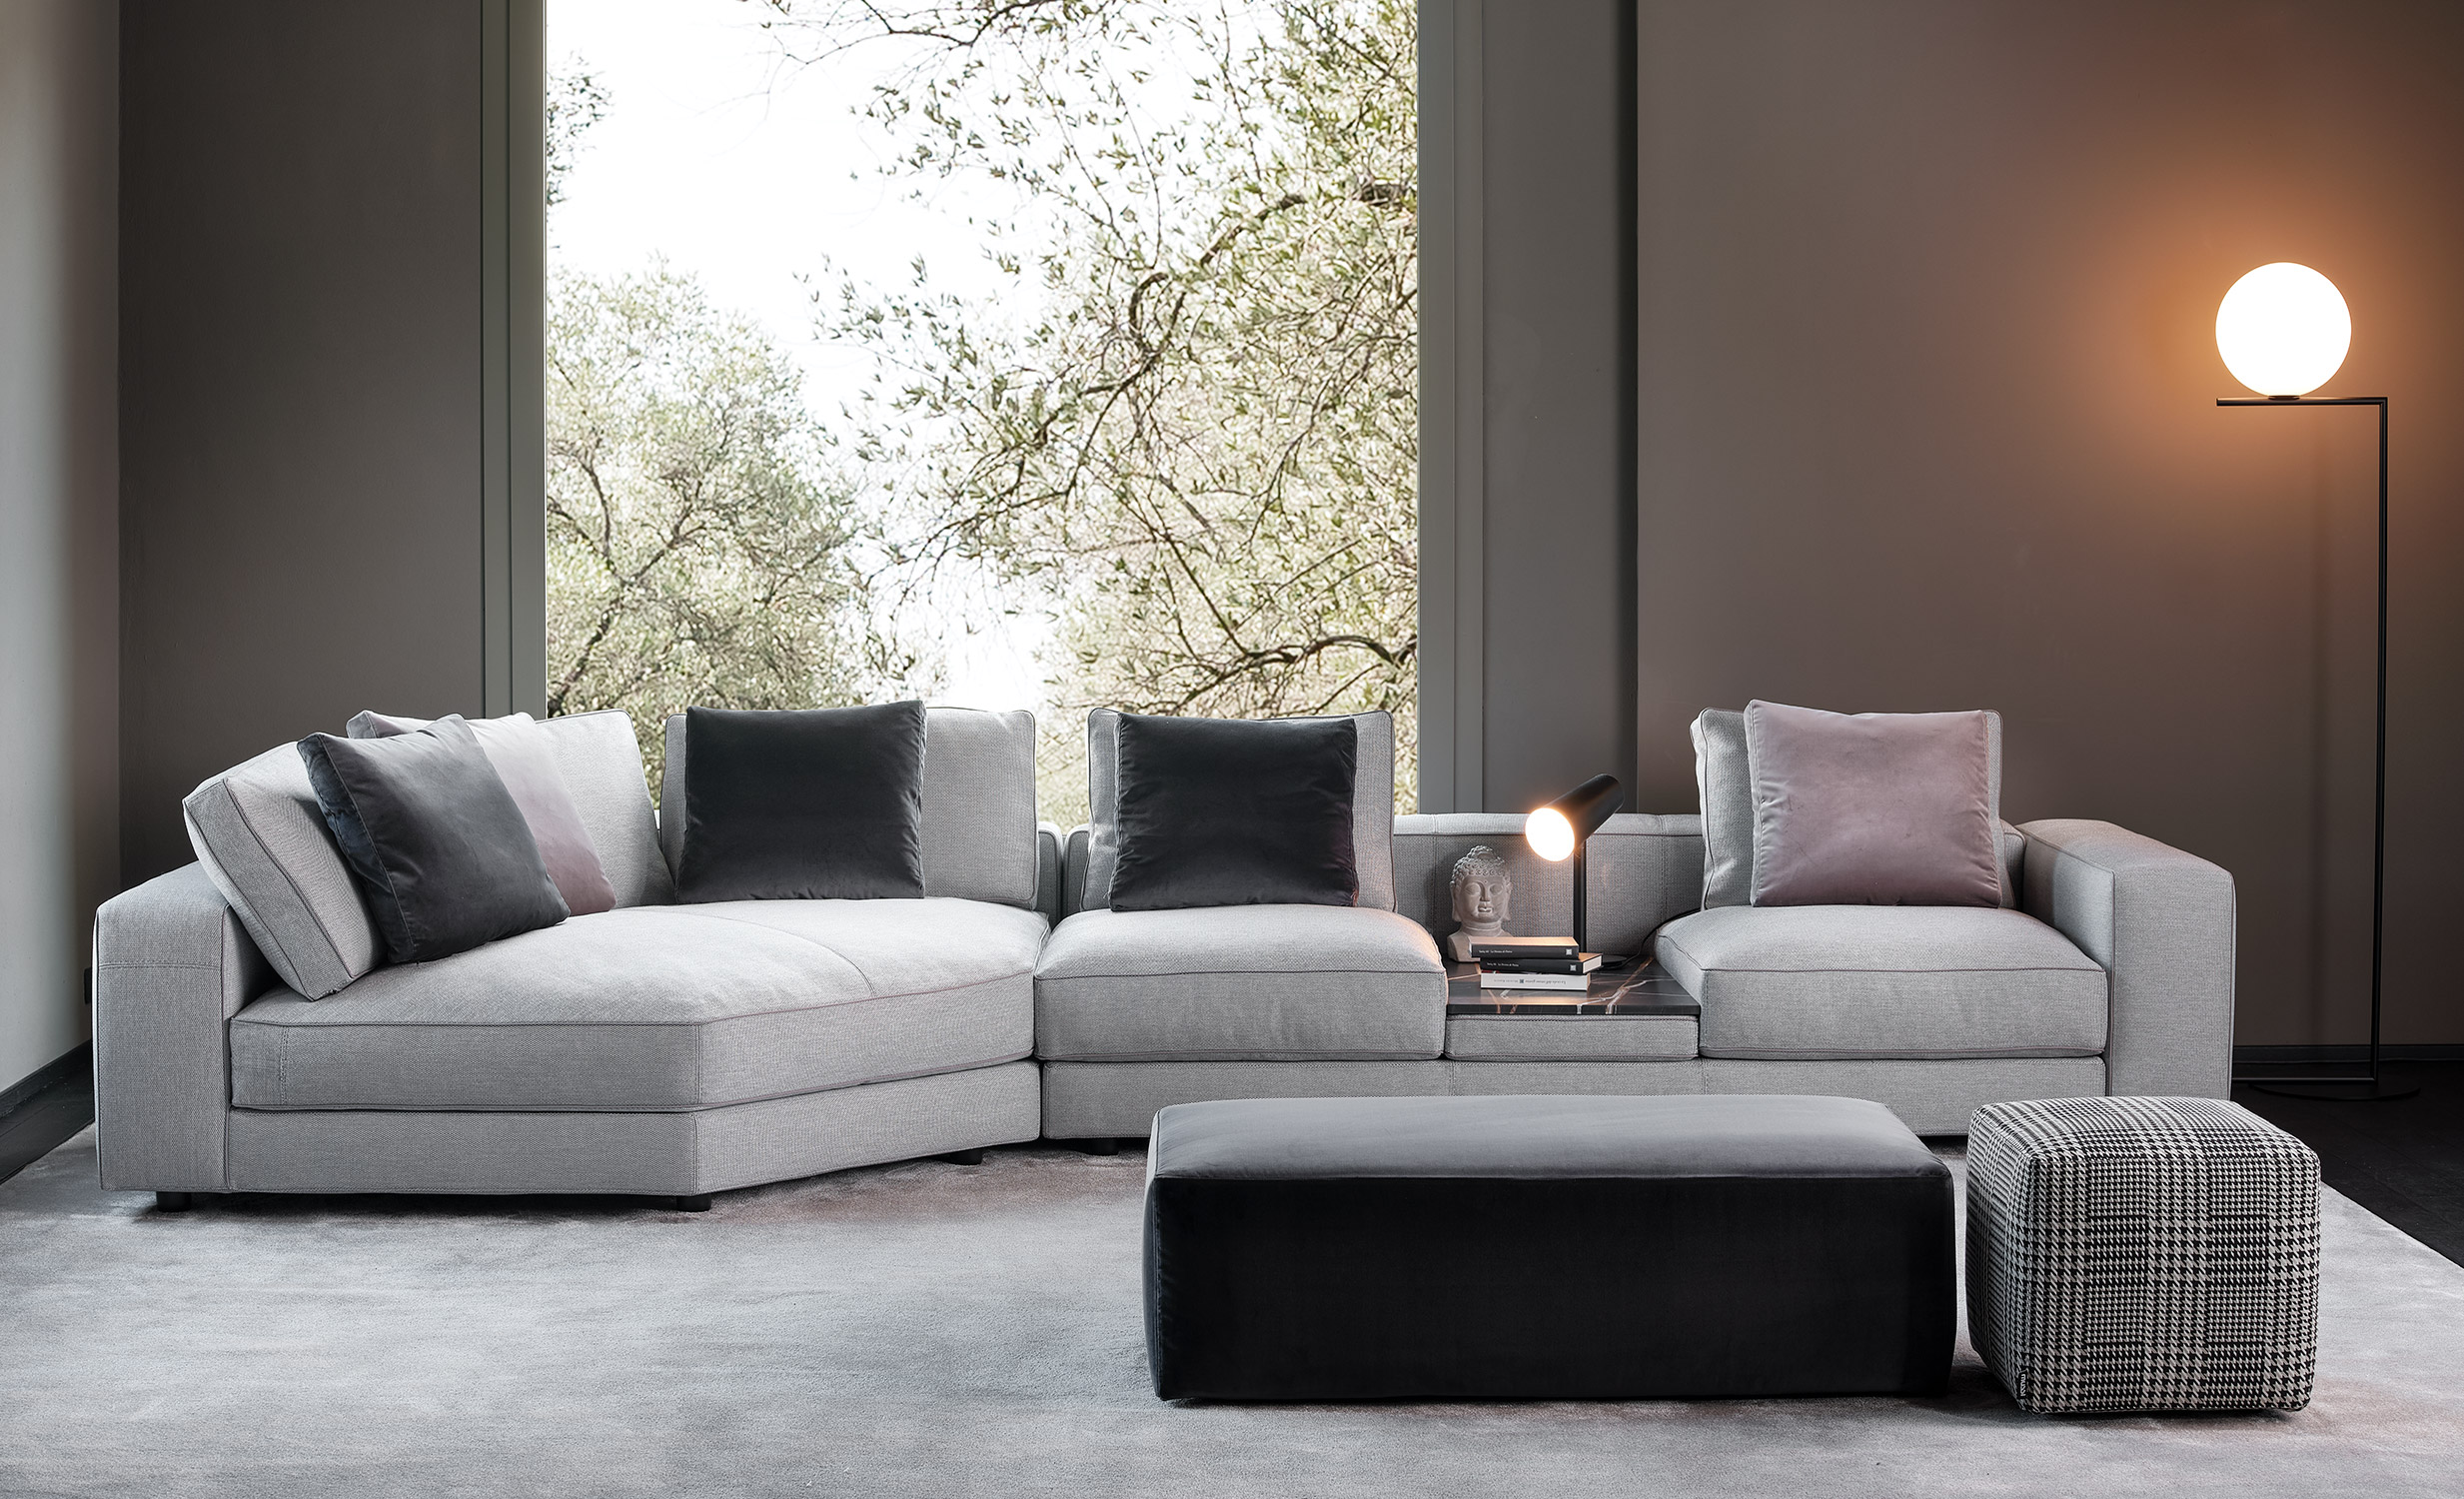 Mussi Sinfonia sectional sofa composition